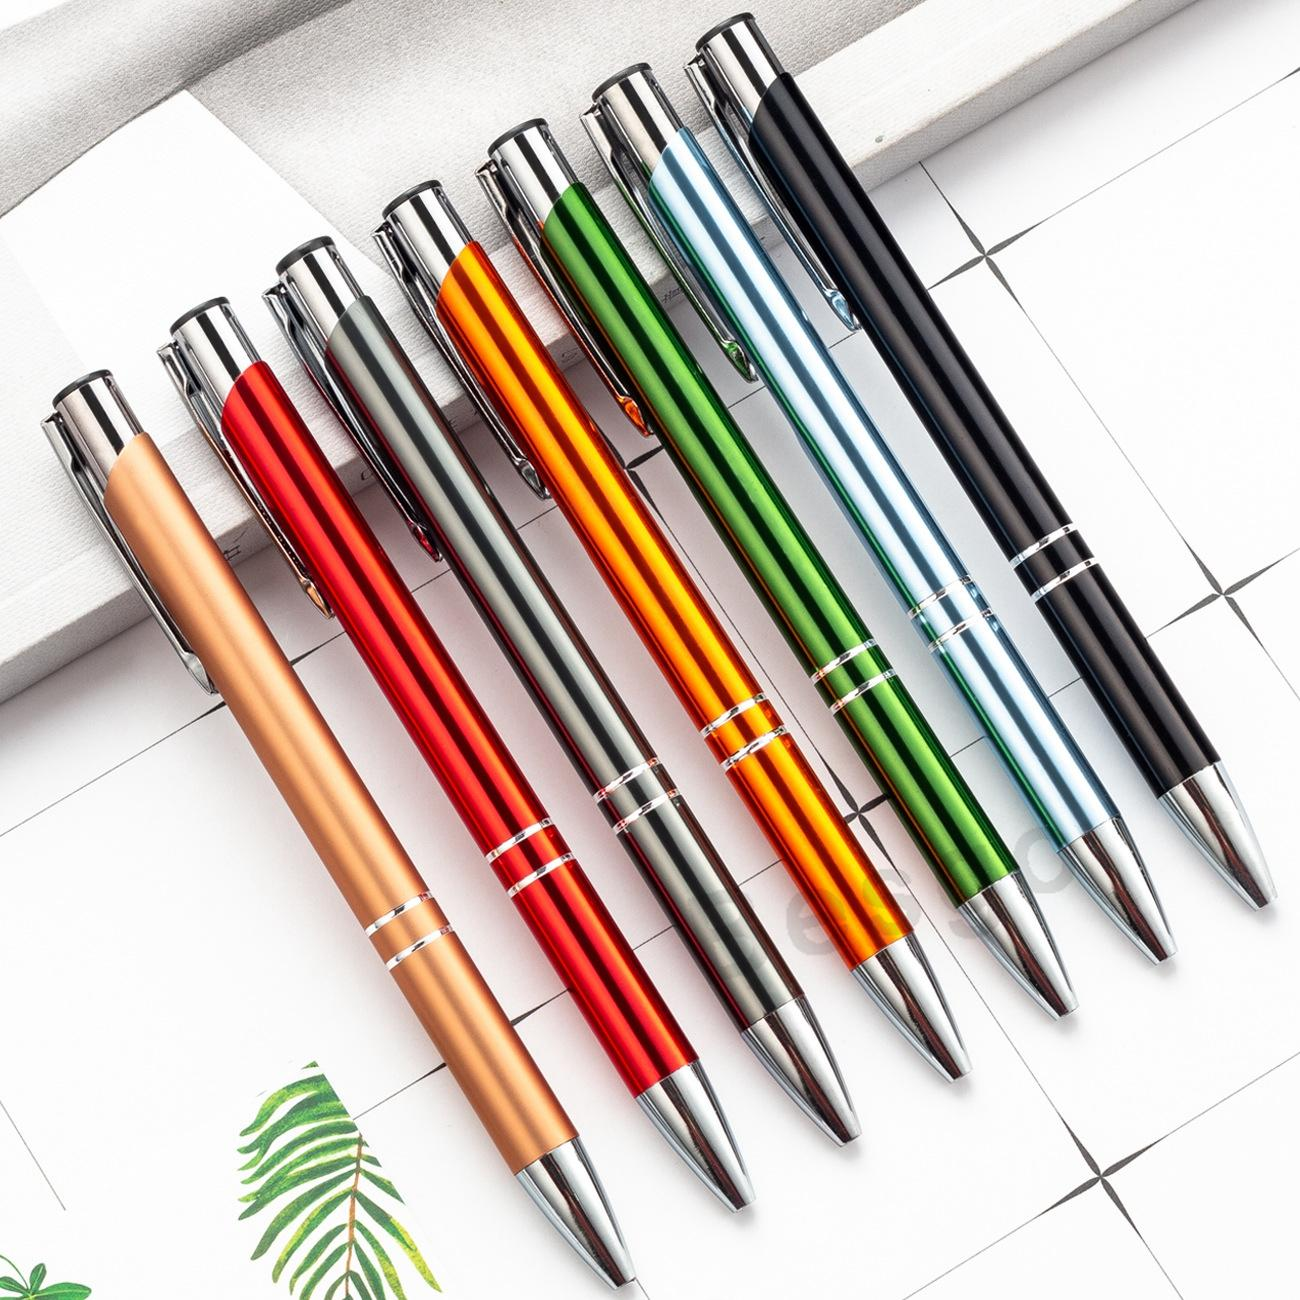 NEW RED INK COLOUR BIRO BALLPOINT BALL POINT PENS *MULTI QTY LISTING*